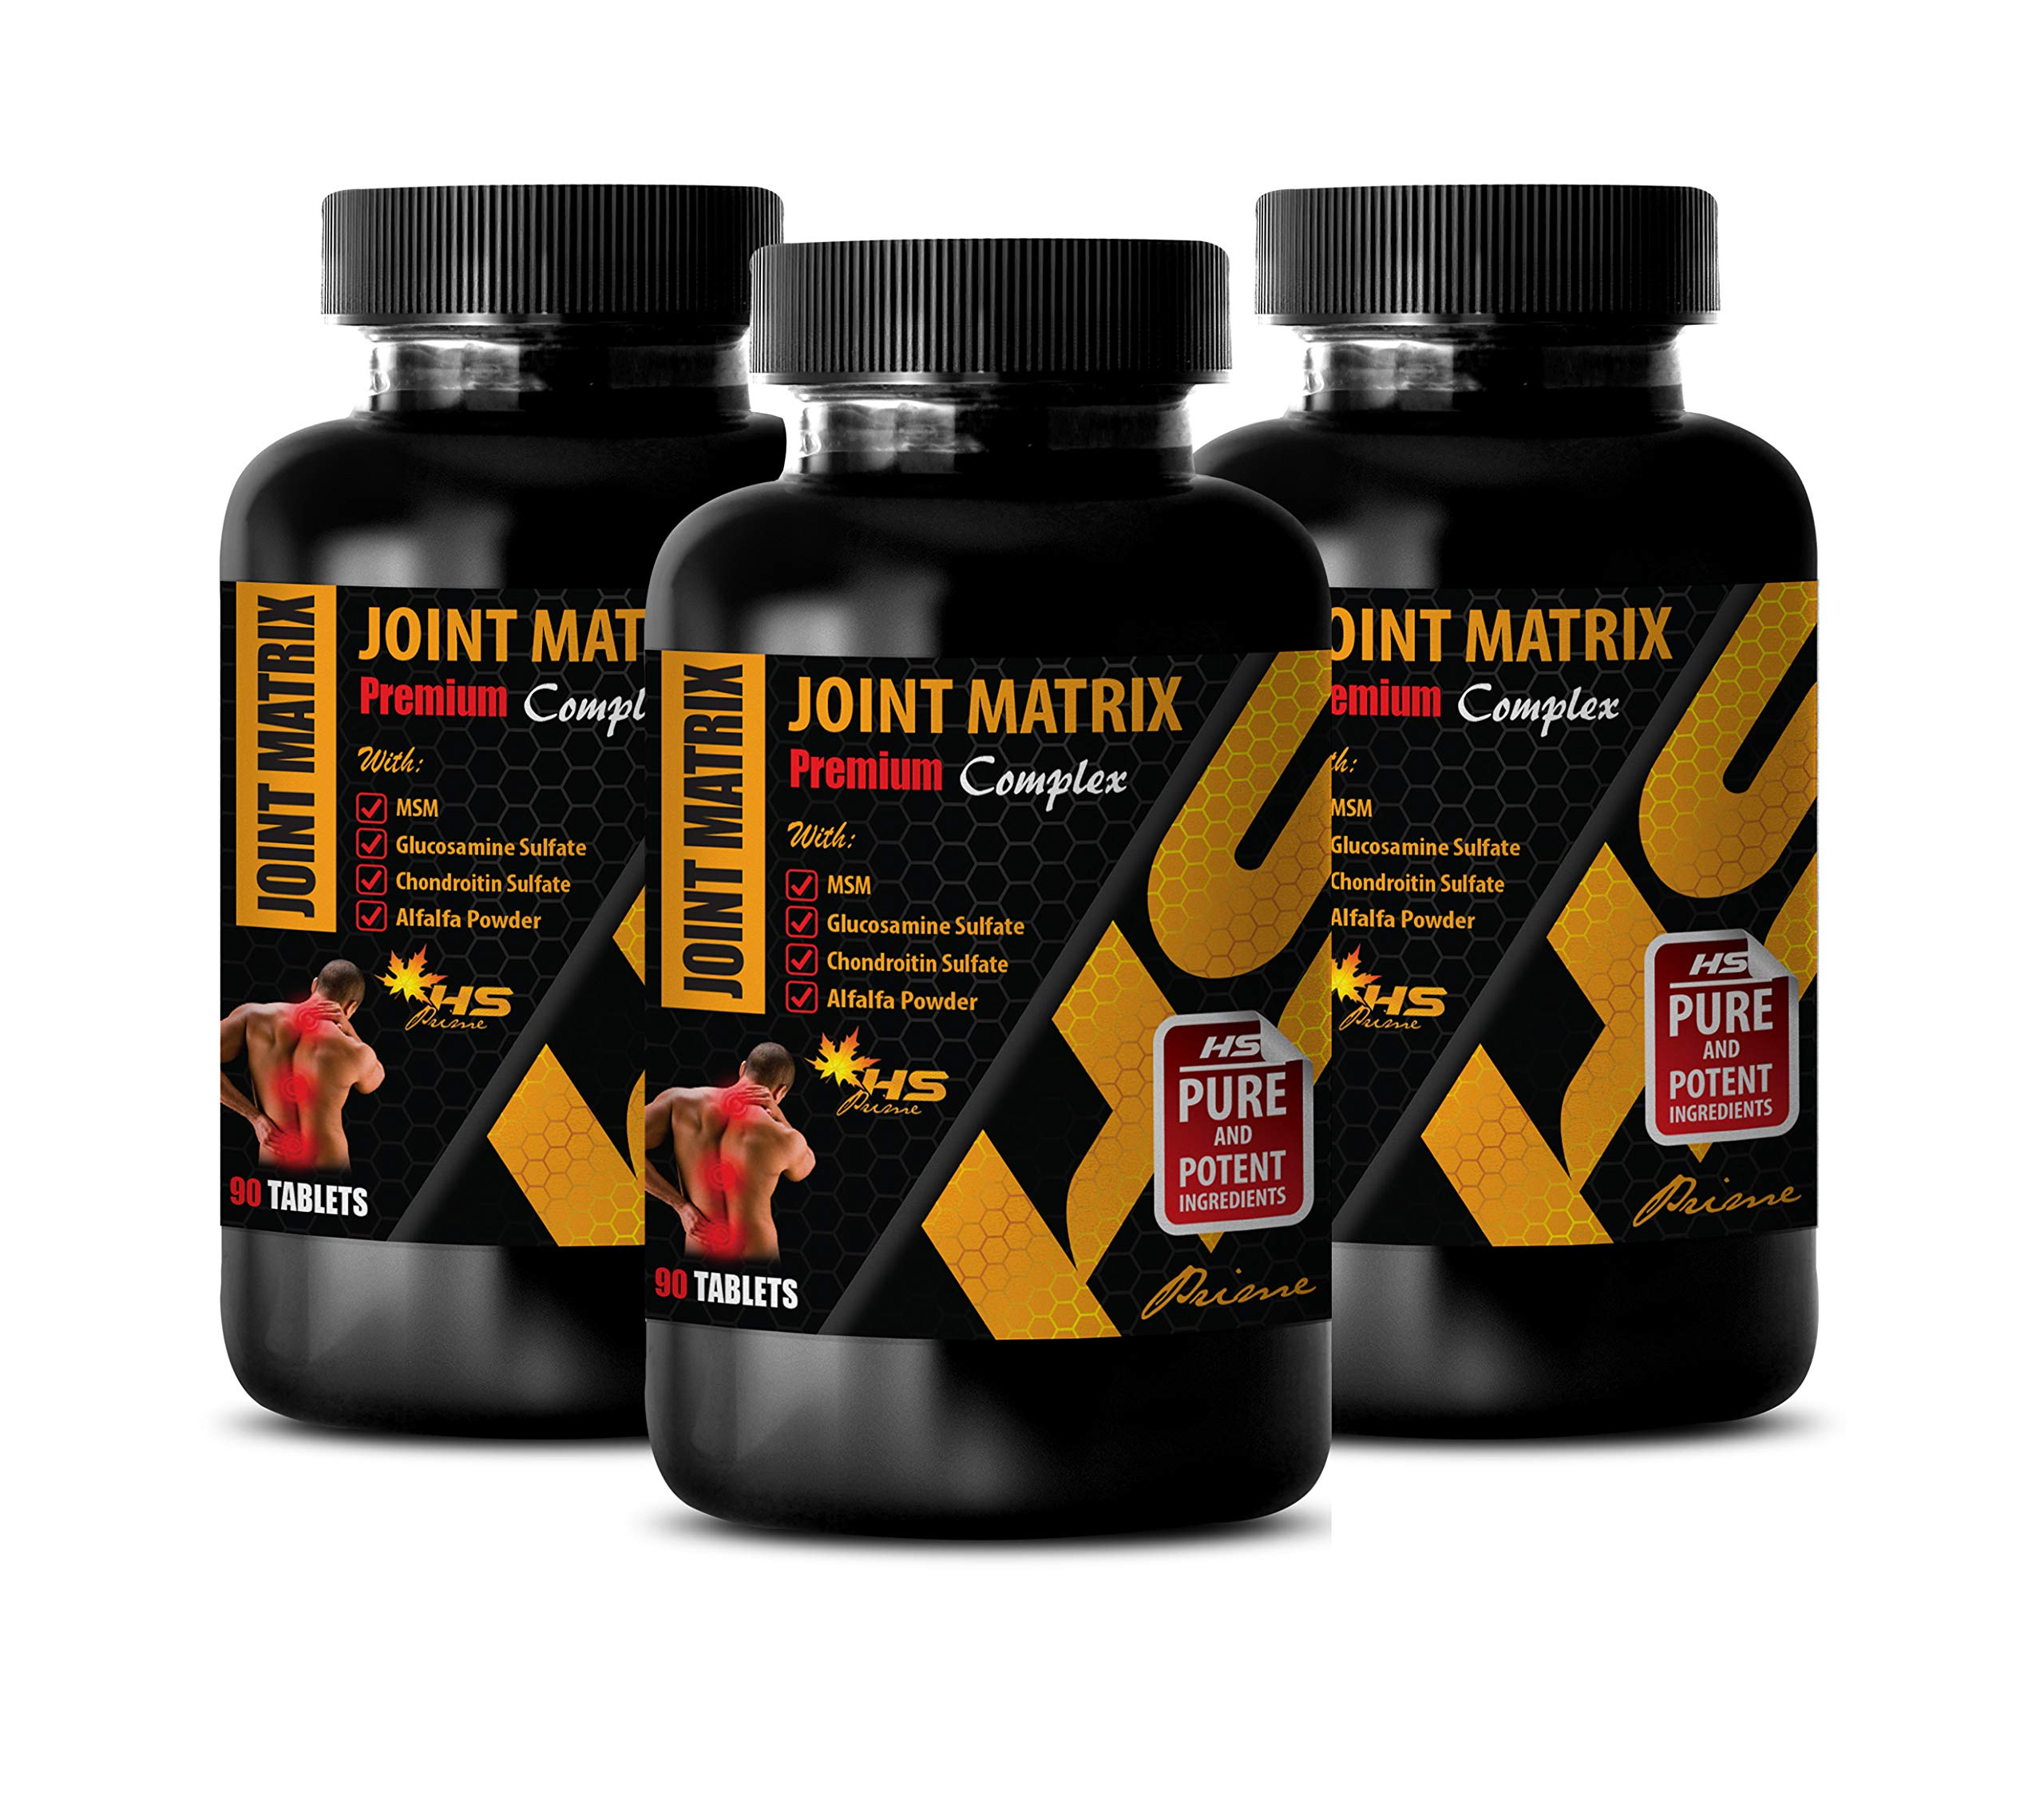 Natural Joint Supplements for Women - Joint Matrix 2170MG - Premium Complex - zinc with Copper Supplement - 3 Bottles 270 Tablets